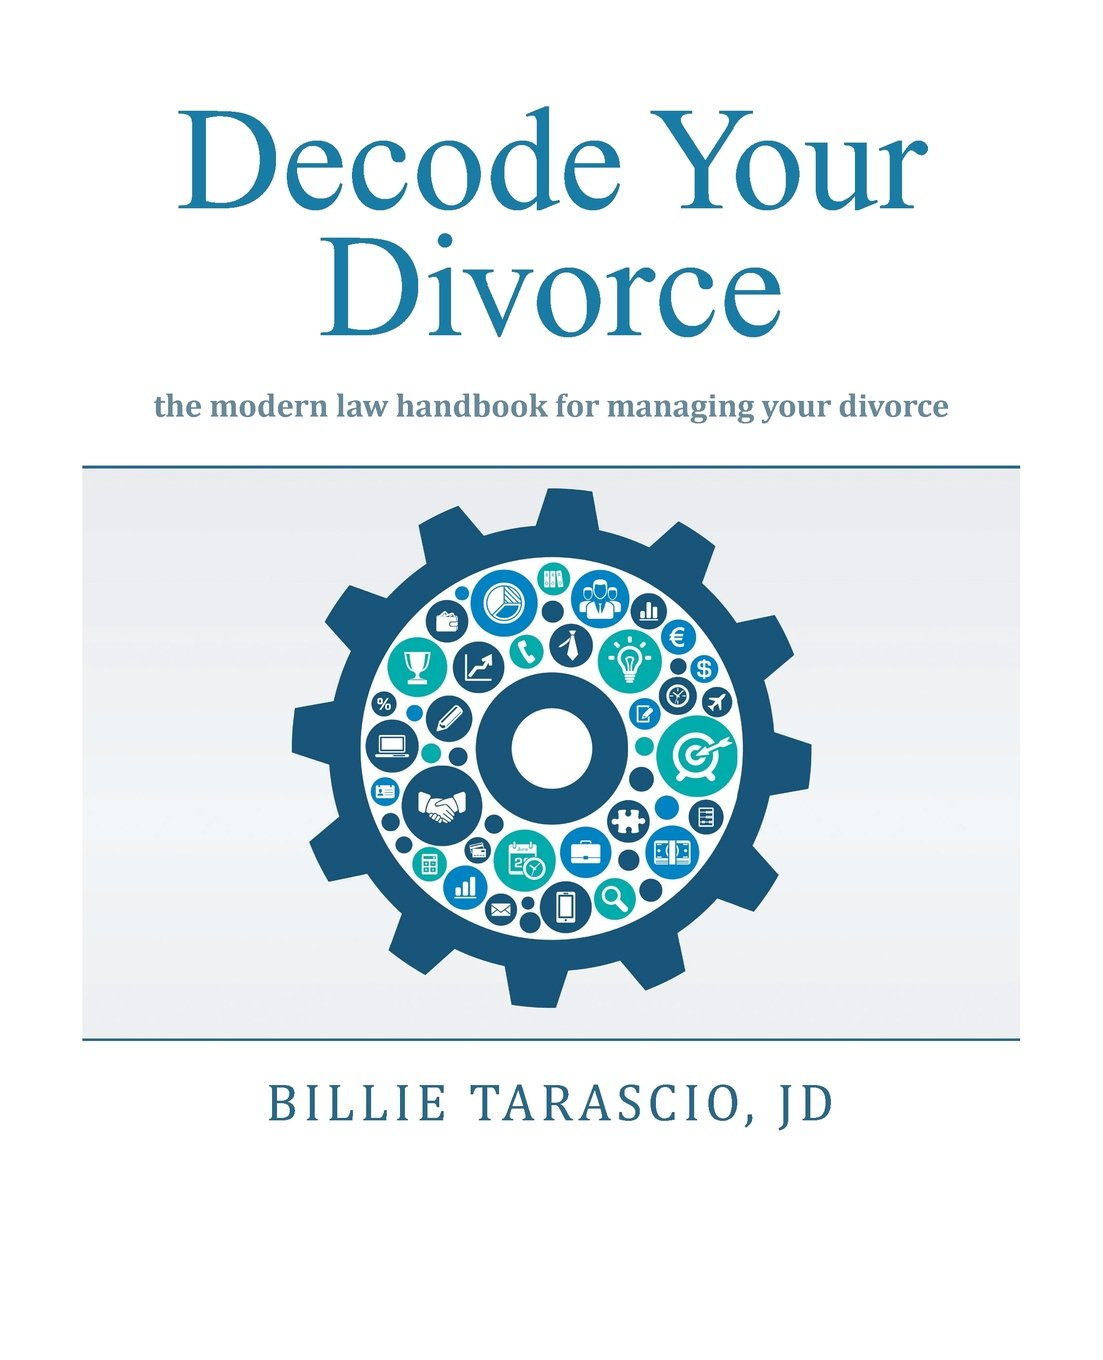 Image OfDecode Your Divorce: The Modern Law Handbook For Managing Your Divorce